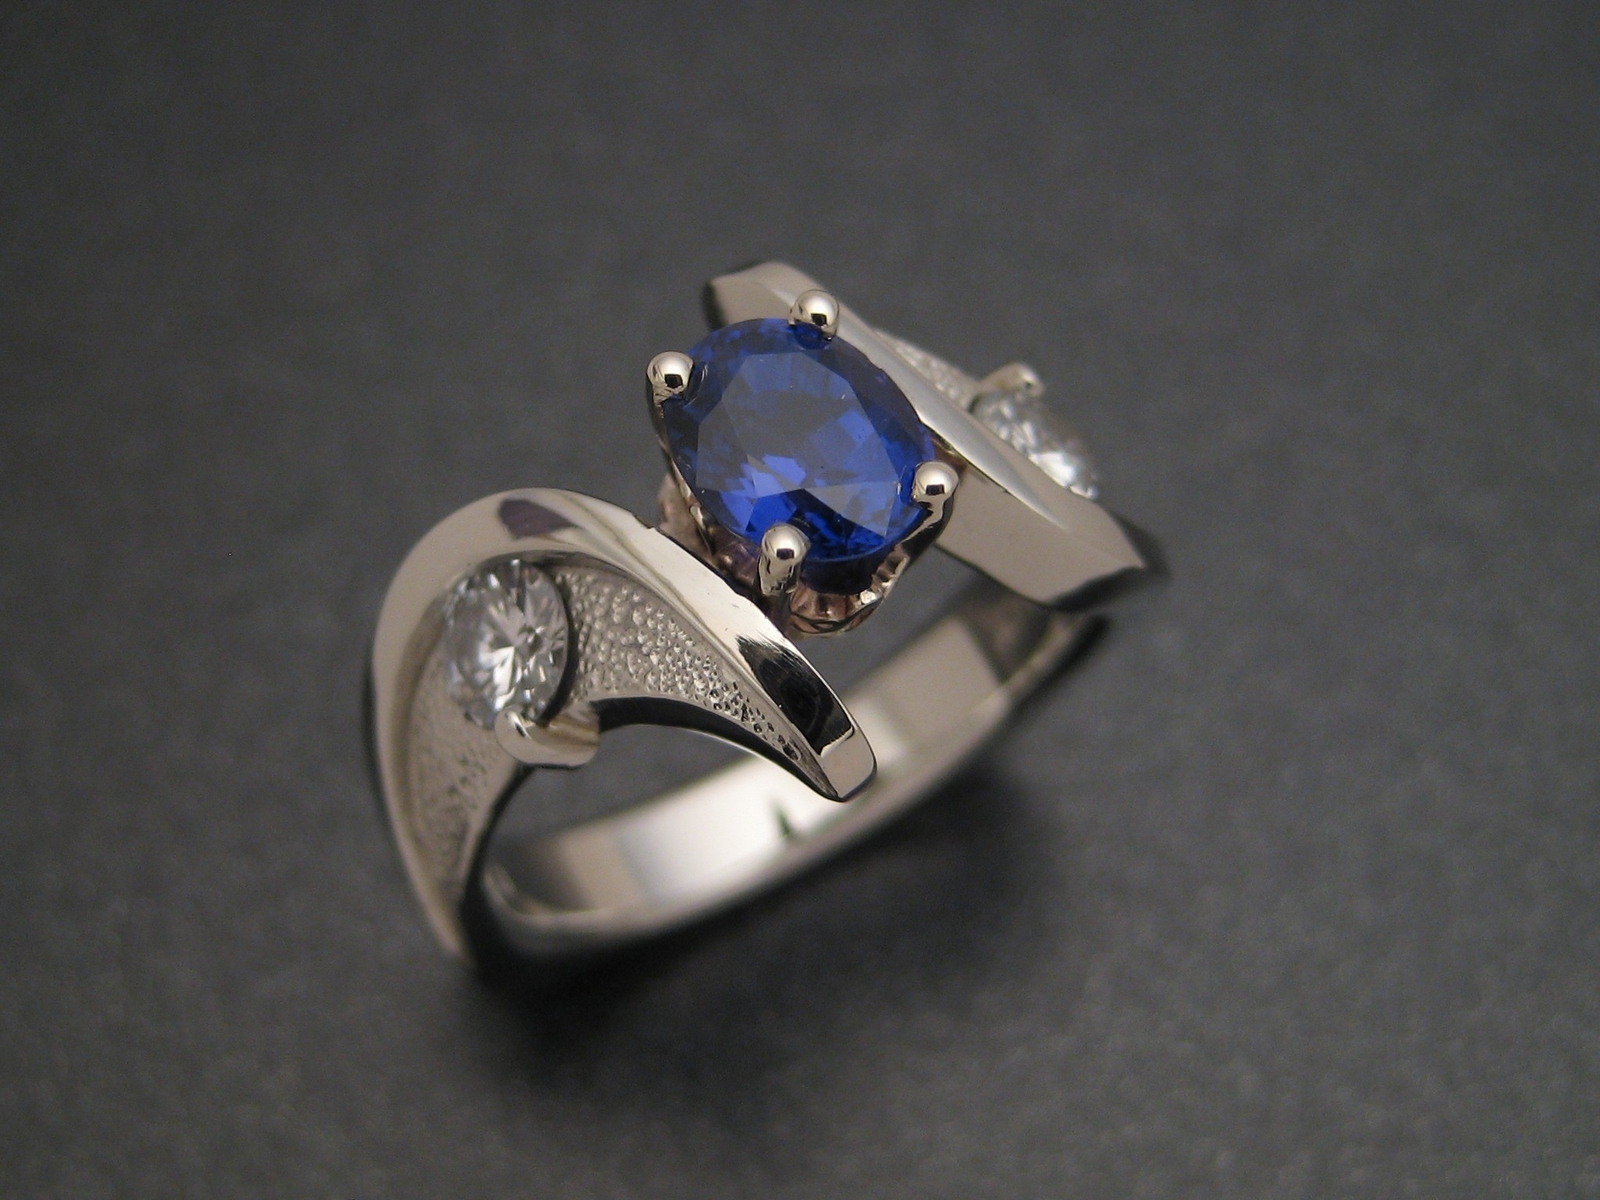 Perfect Sapphire Wedding Ring By Sculpted Jewelry Designs At CustomMade.com